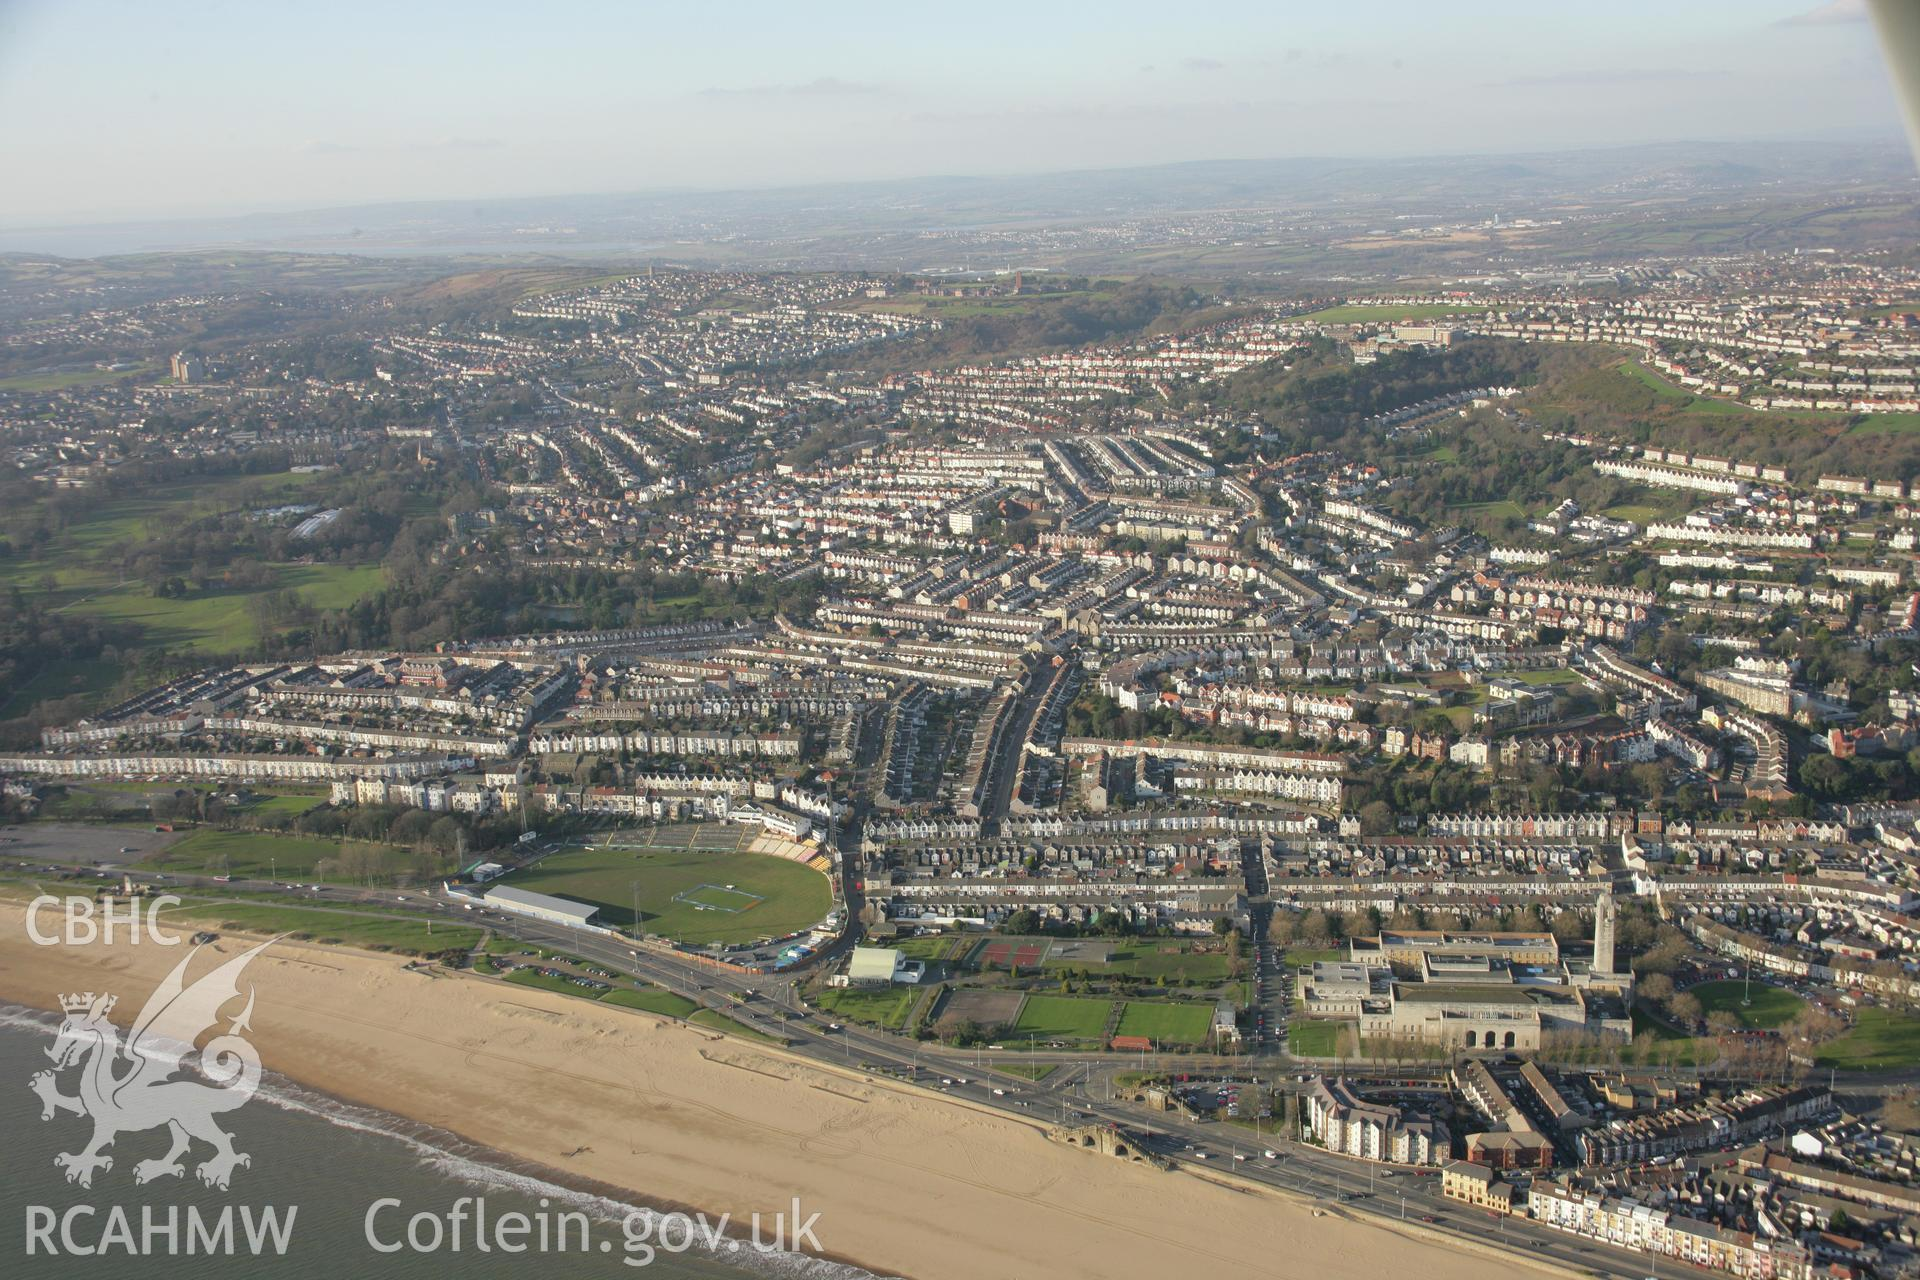 RCAHMW colour oblique aerial photograph of Guildhall, Swansea from the south-east. A wide view with the Uplands area beyond. Taken on 26 January 2006 by Toby Driver.